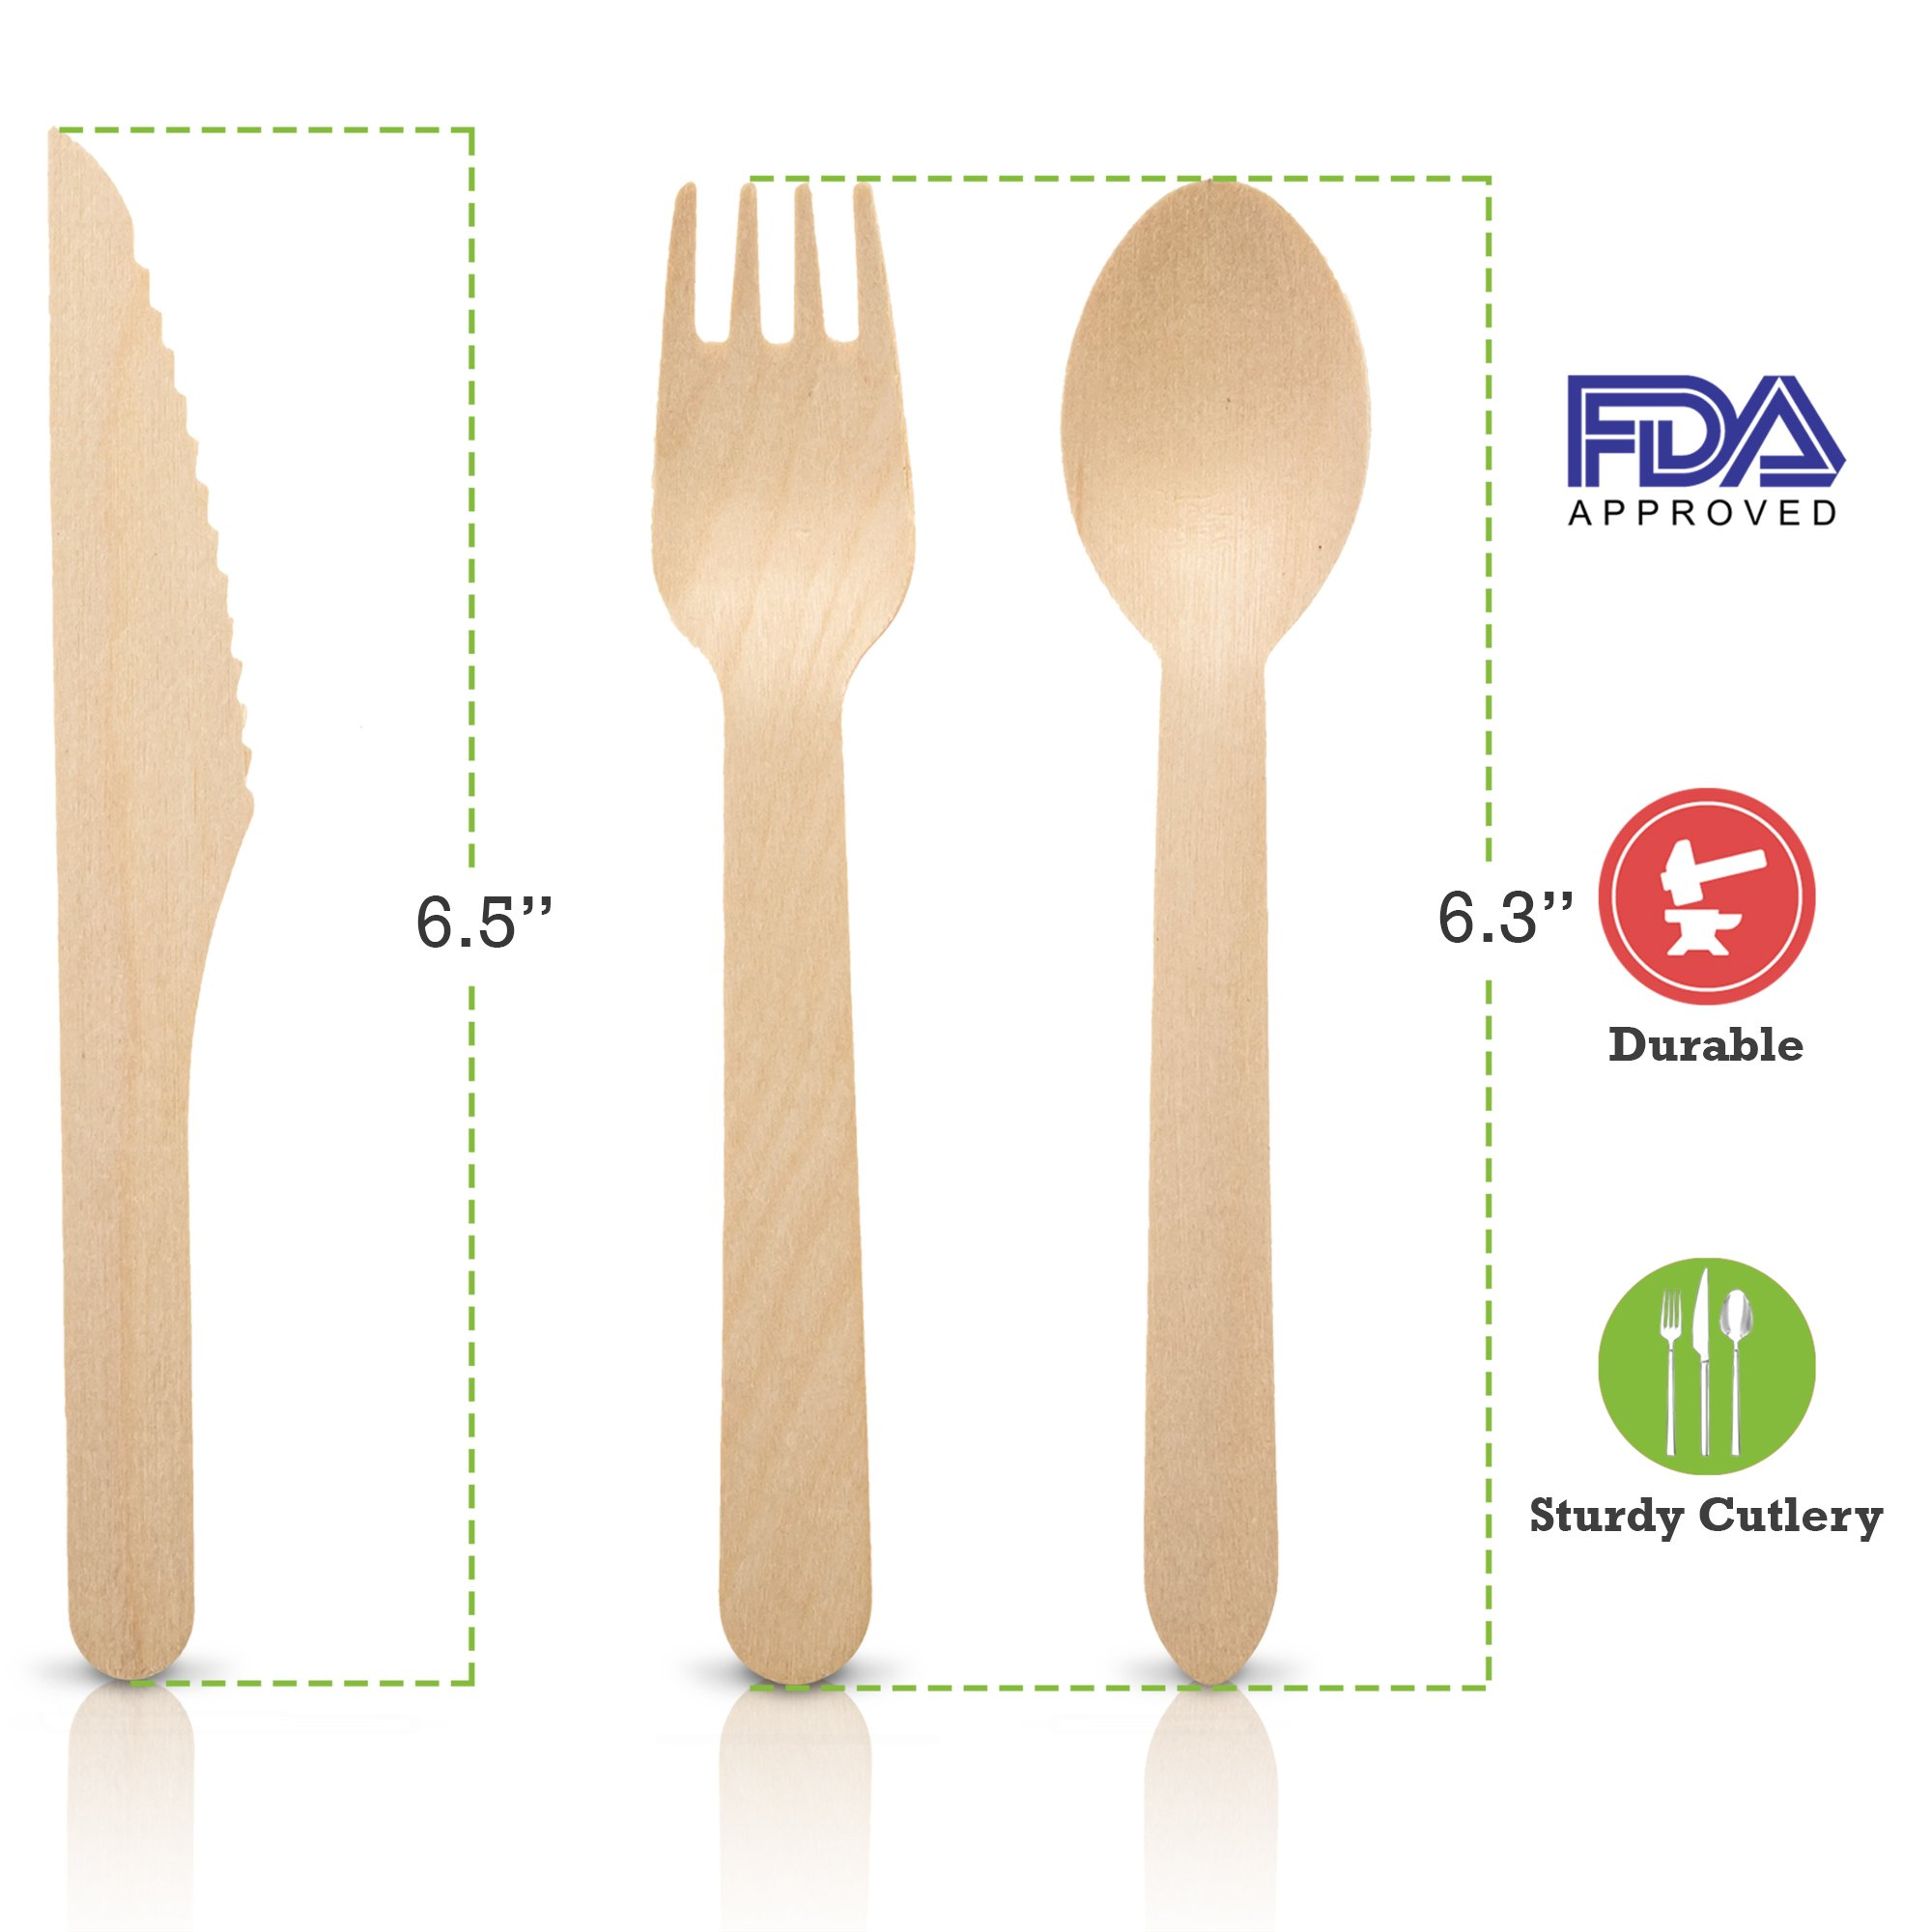 Wooden Disposable Utensils Set 100 Forks 50 Spoons 50 Knives Wood Cutlery Eco Friendly Compostable Biodegradable Silverware Party Flatware Kitchen Serving Eating Picnic Wedding Green Natural Utensil by Wood Trove (Image #3)